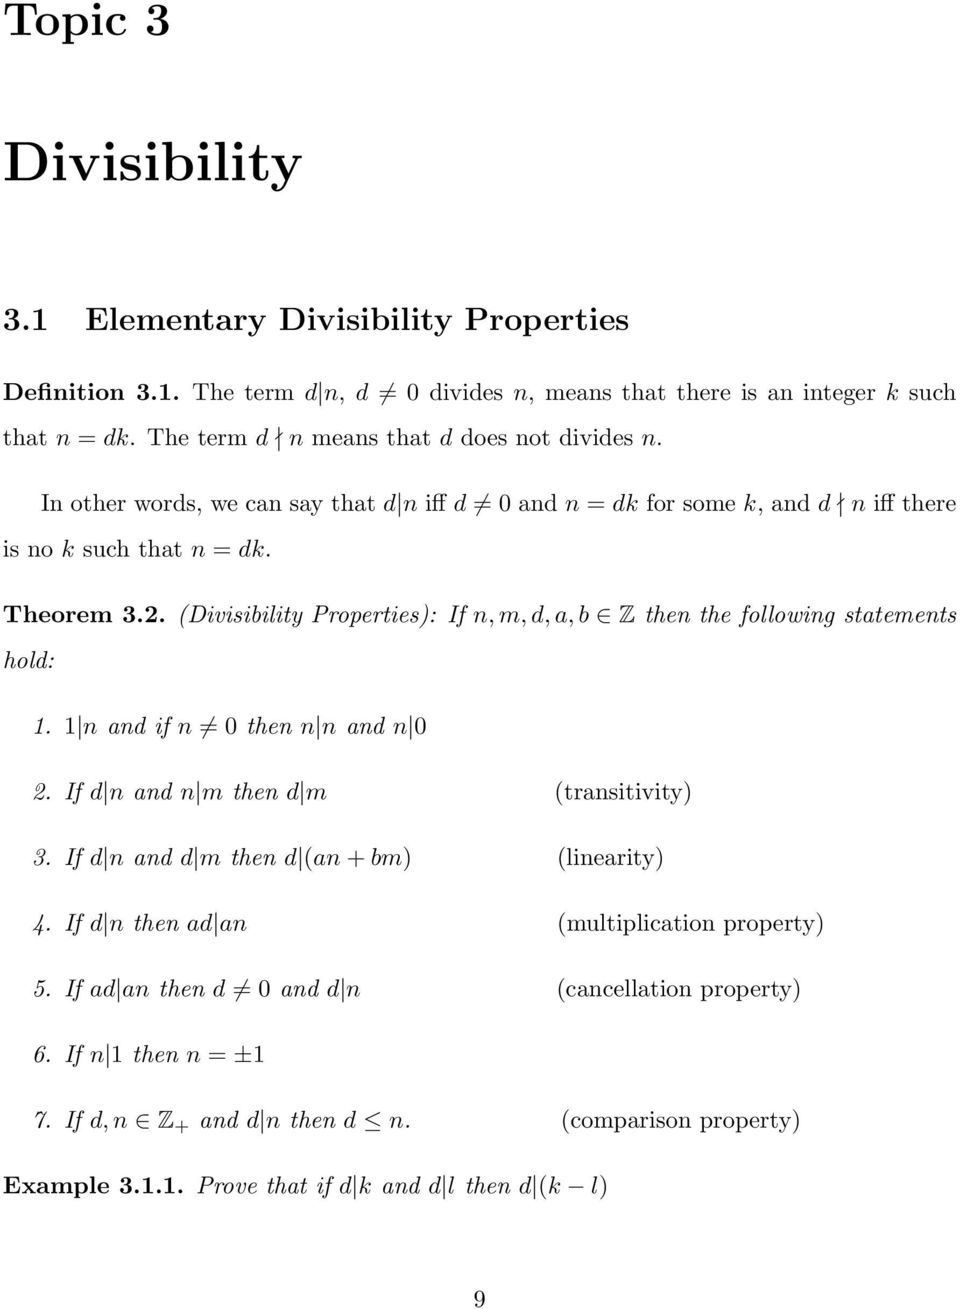 (Divisibility Properties): If n, m, d, a, b Z then the following statements hold: 1. 1 n and if n 0 then n n and n 0 2. If d n and n m then d m (transitivity) 3.